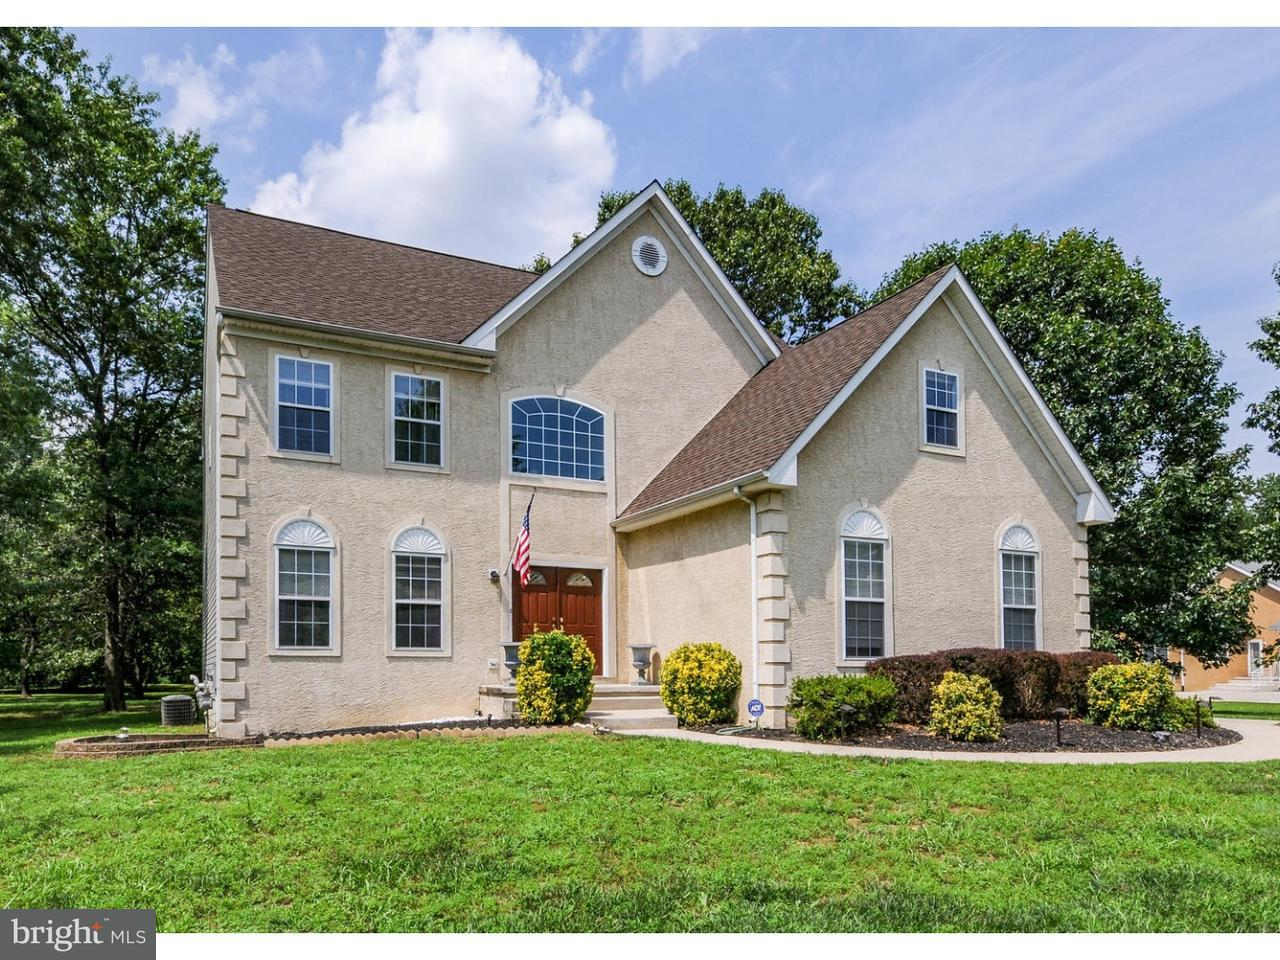 Single Family Home for Sale at 2 ELLIS ALY Edgewater Park, New Jersey 08010 United States